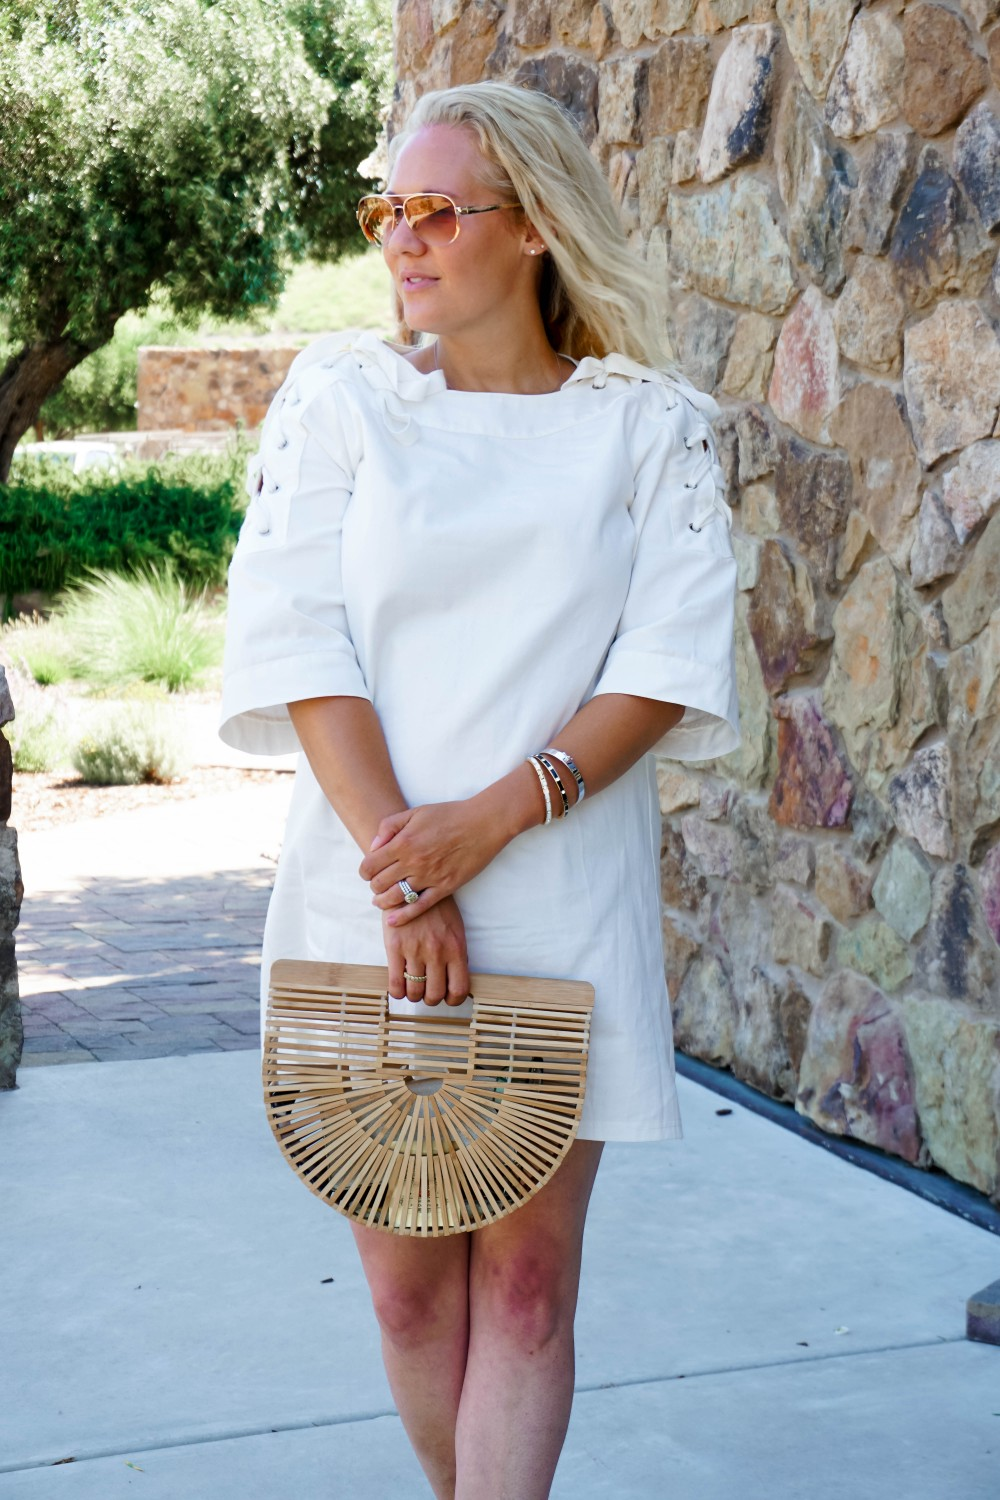 Lace-Up White Denim Dress-JOA Denim Dress-Summer Style-Bijou on the Park-Have Need Want-Outfit Inspiration-Mom Style 3